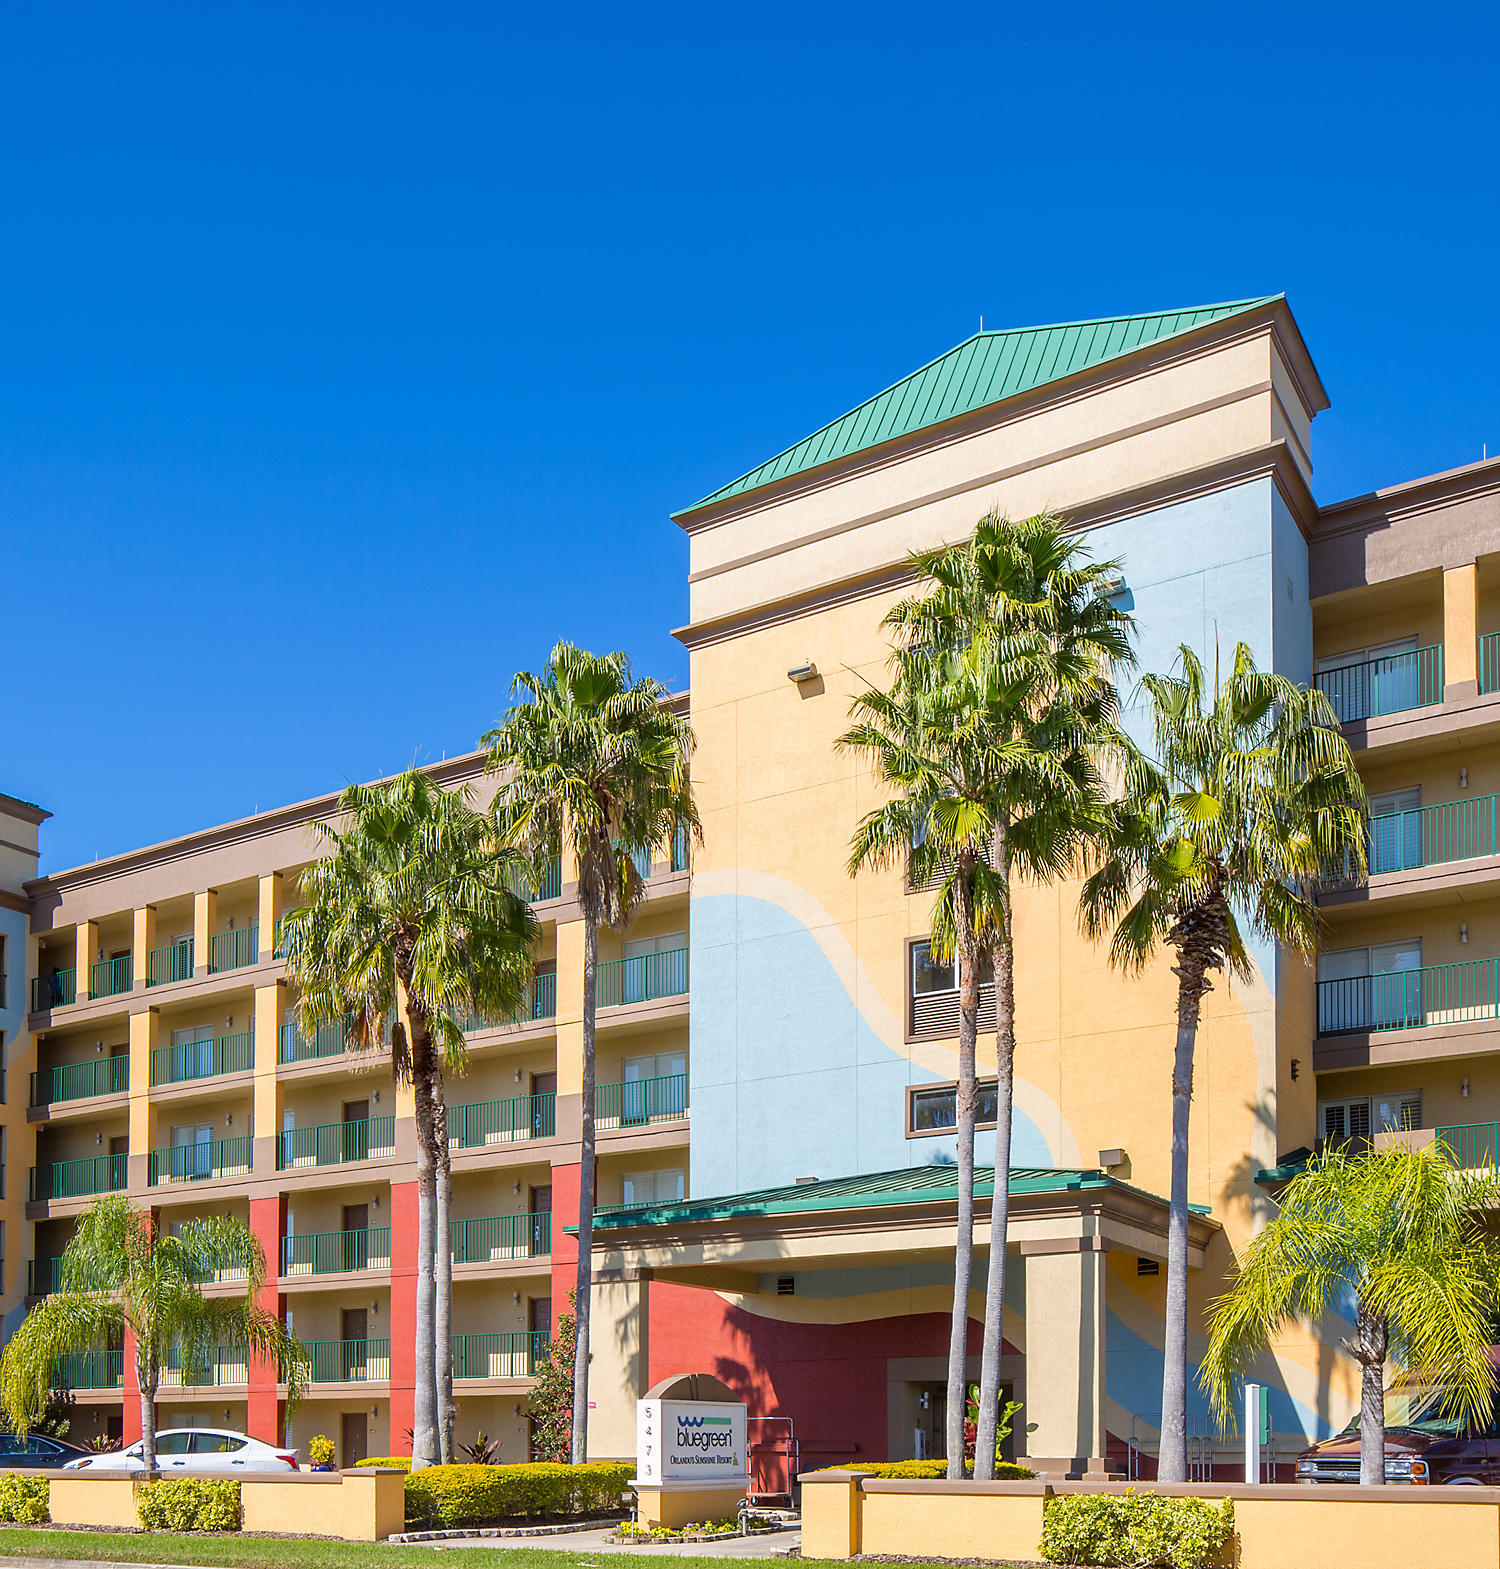 Orlando Sunshine Resort Exterior